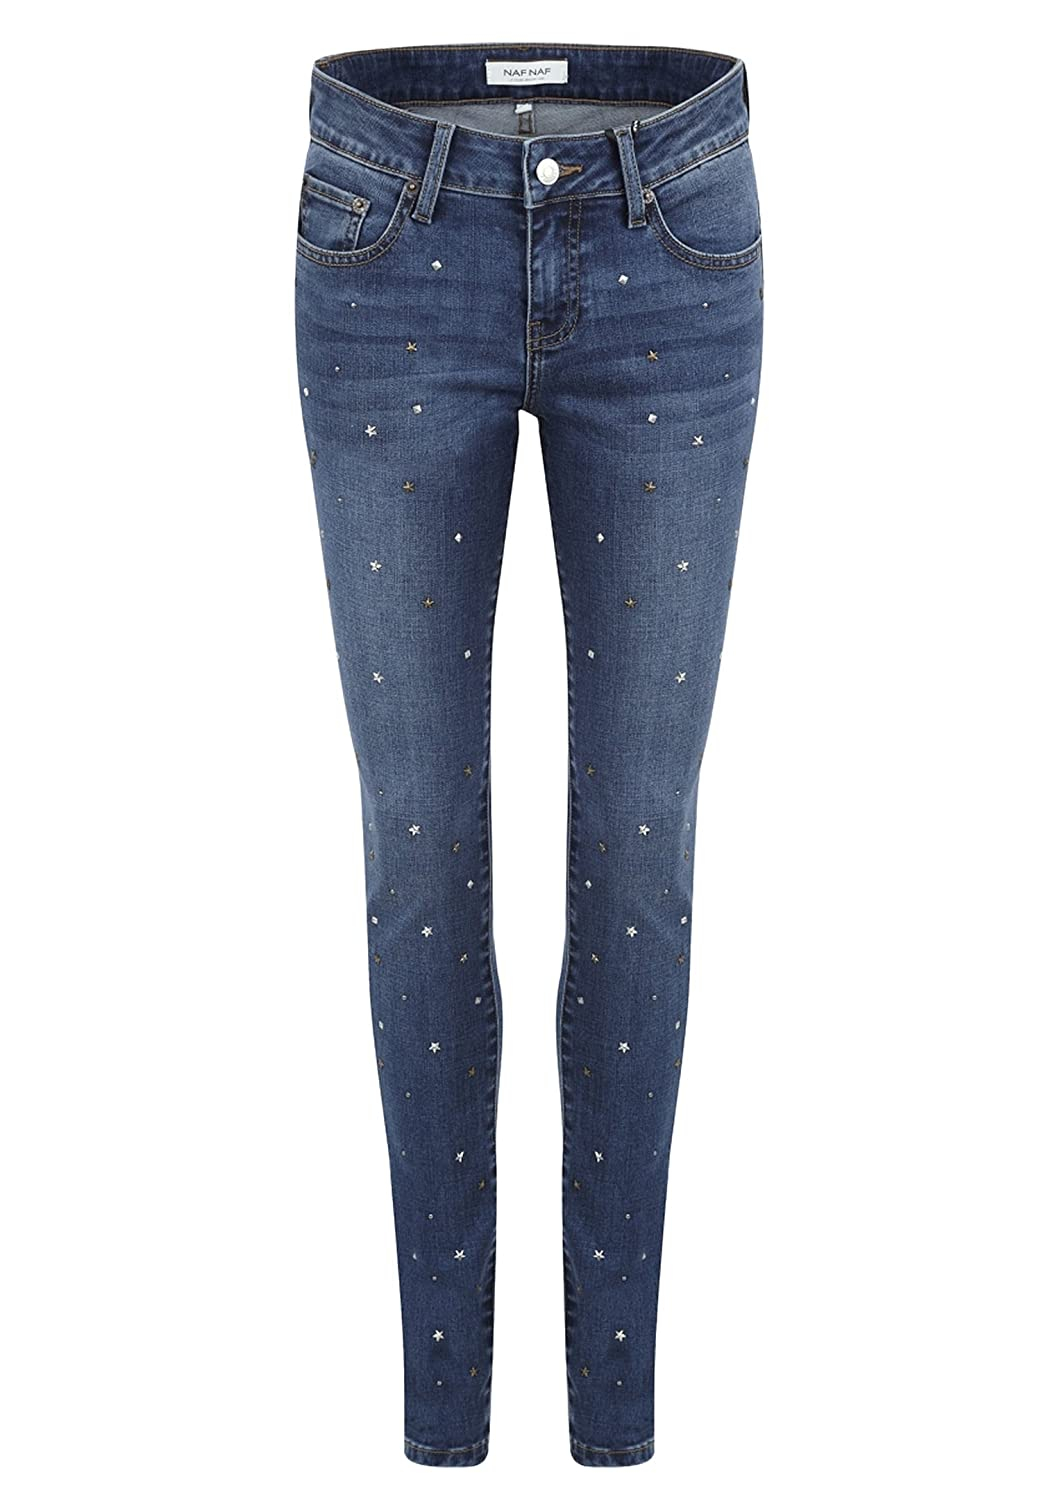 Womens Galy Slim Trousers Nafnaf Cheap Sale Looking For k6KSNt